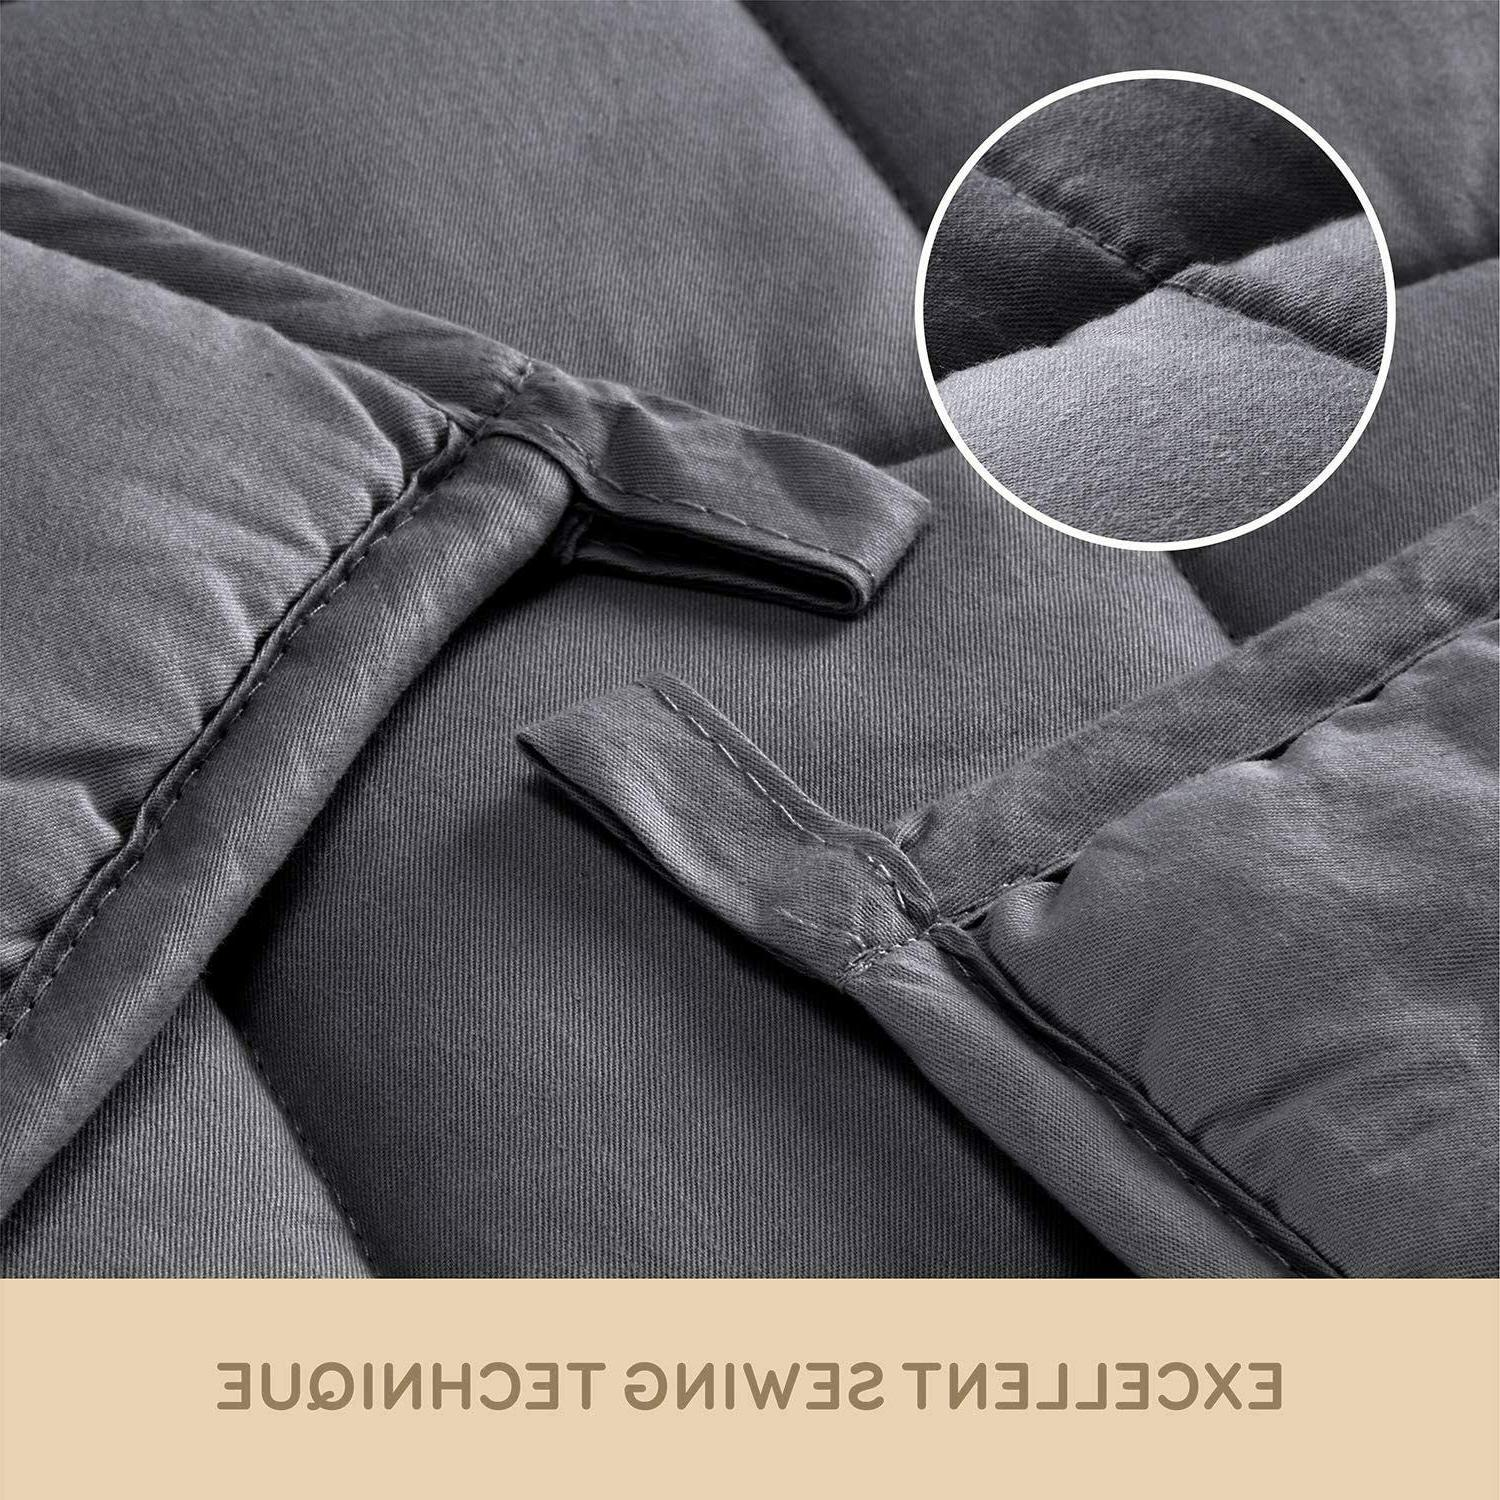 Weighted Blankets Weighted 20 Blanket Adults